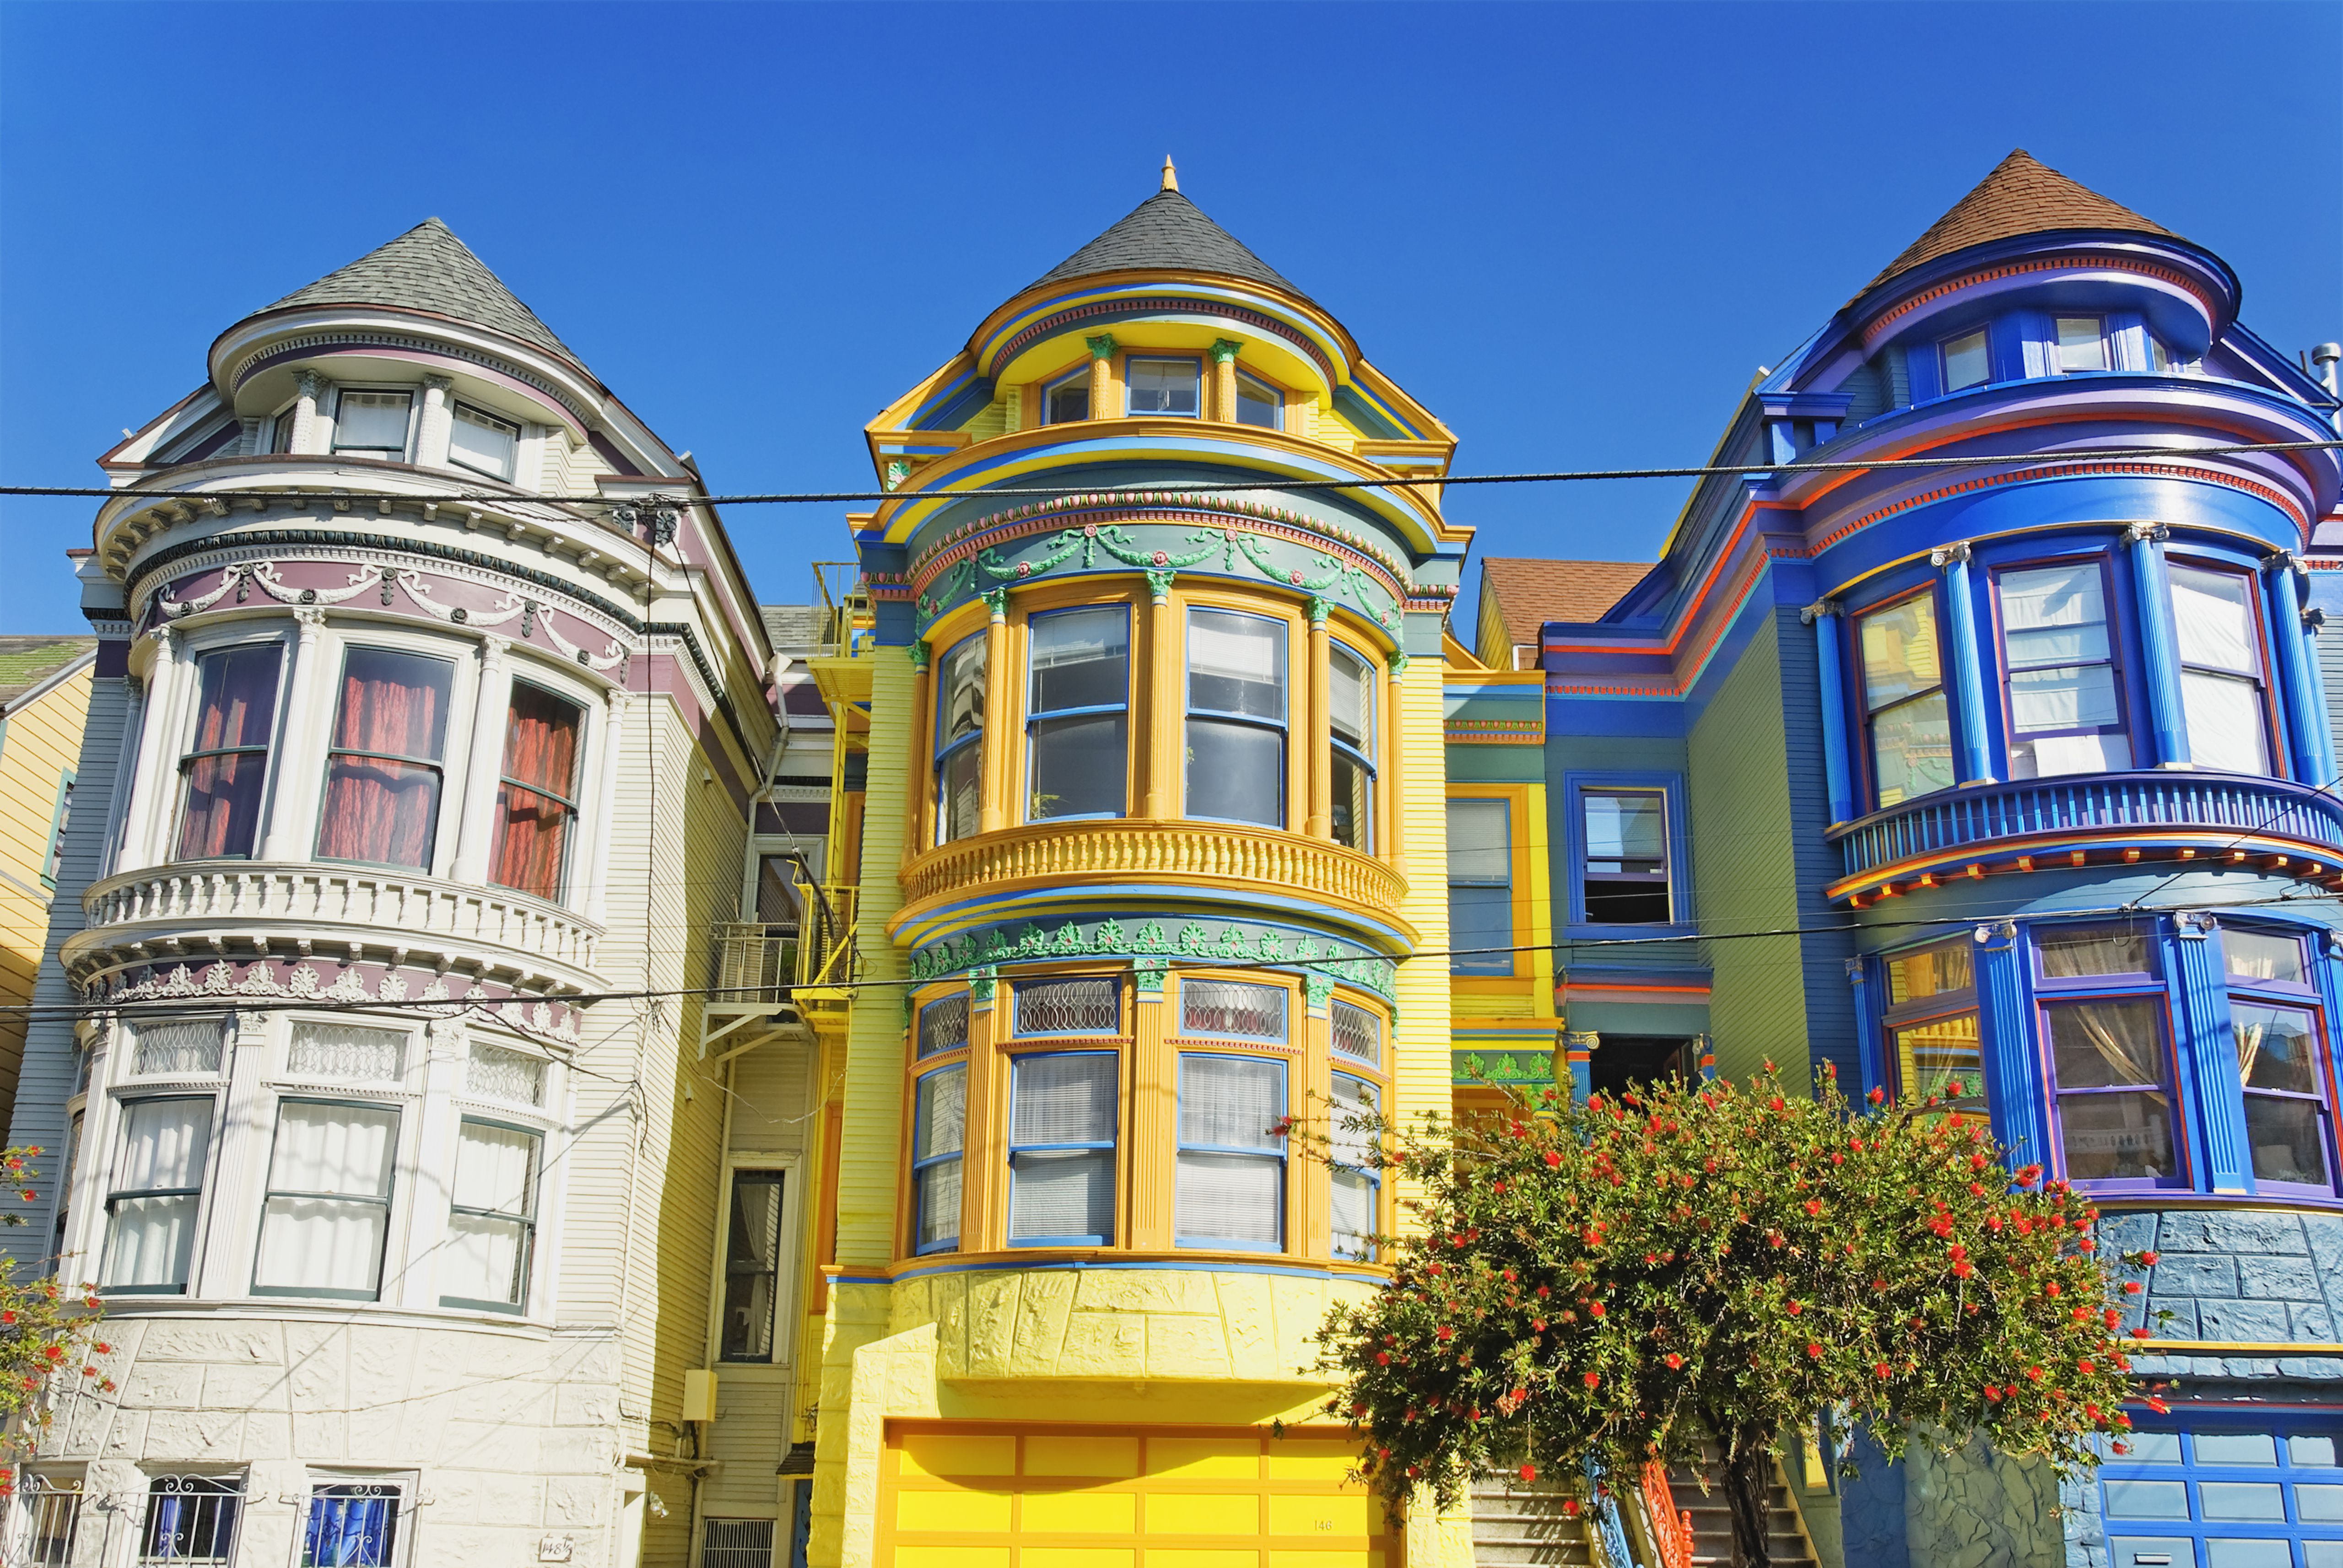 victorian francisco san exterior painted ladies architecture colorful colors paint houses row funk mitchell getty homes choose lady famous